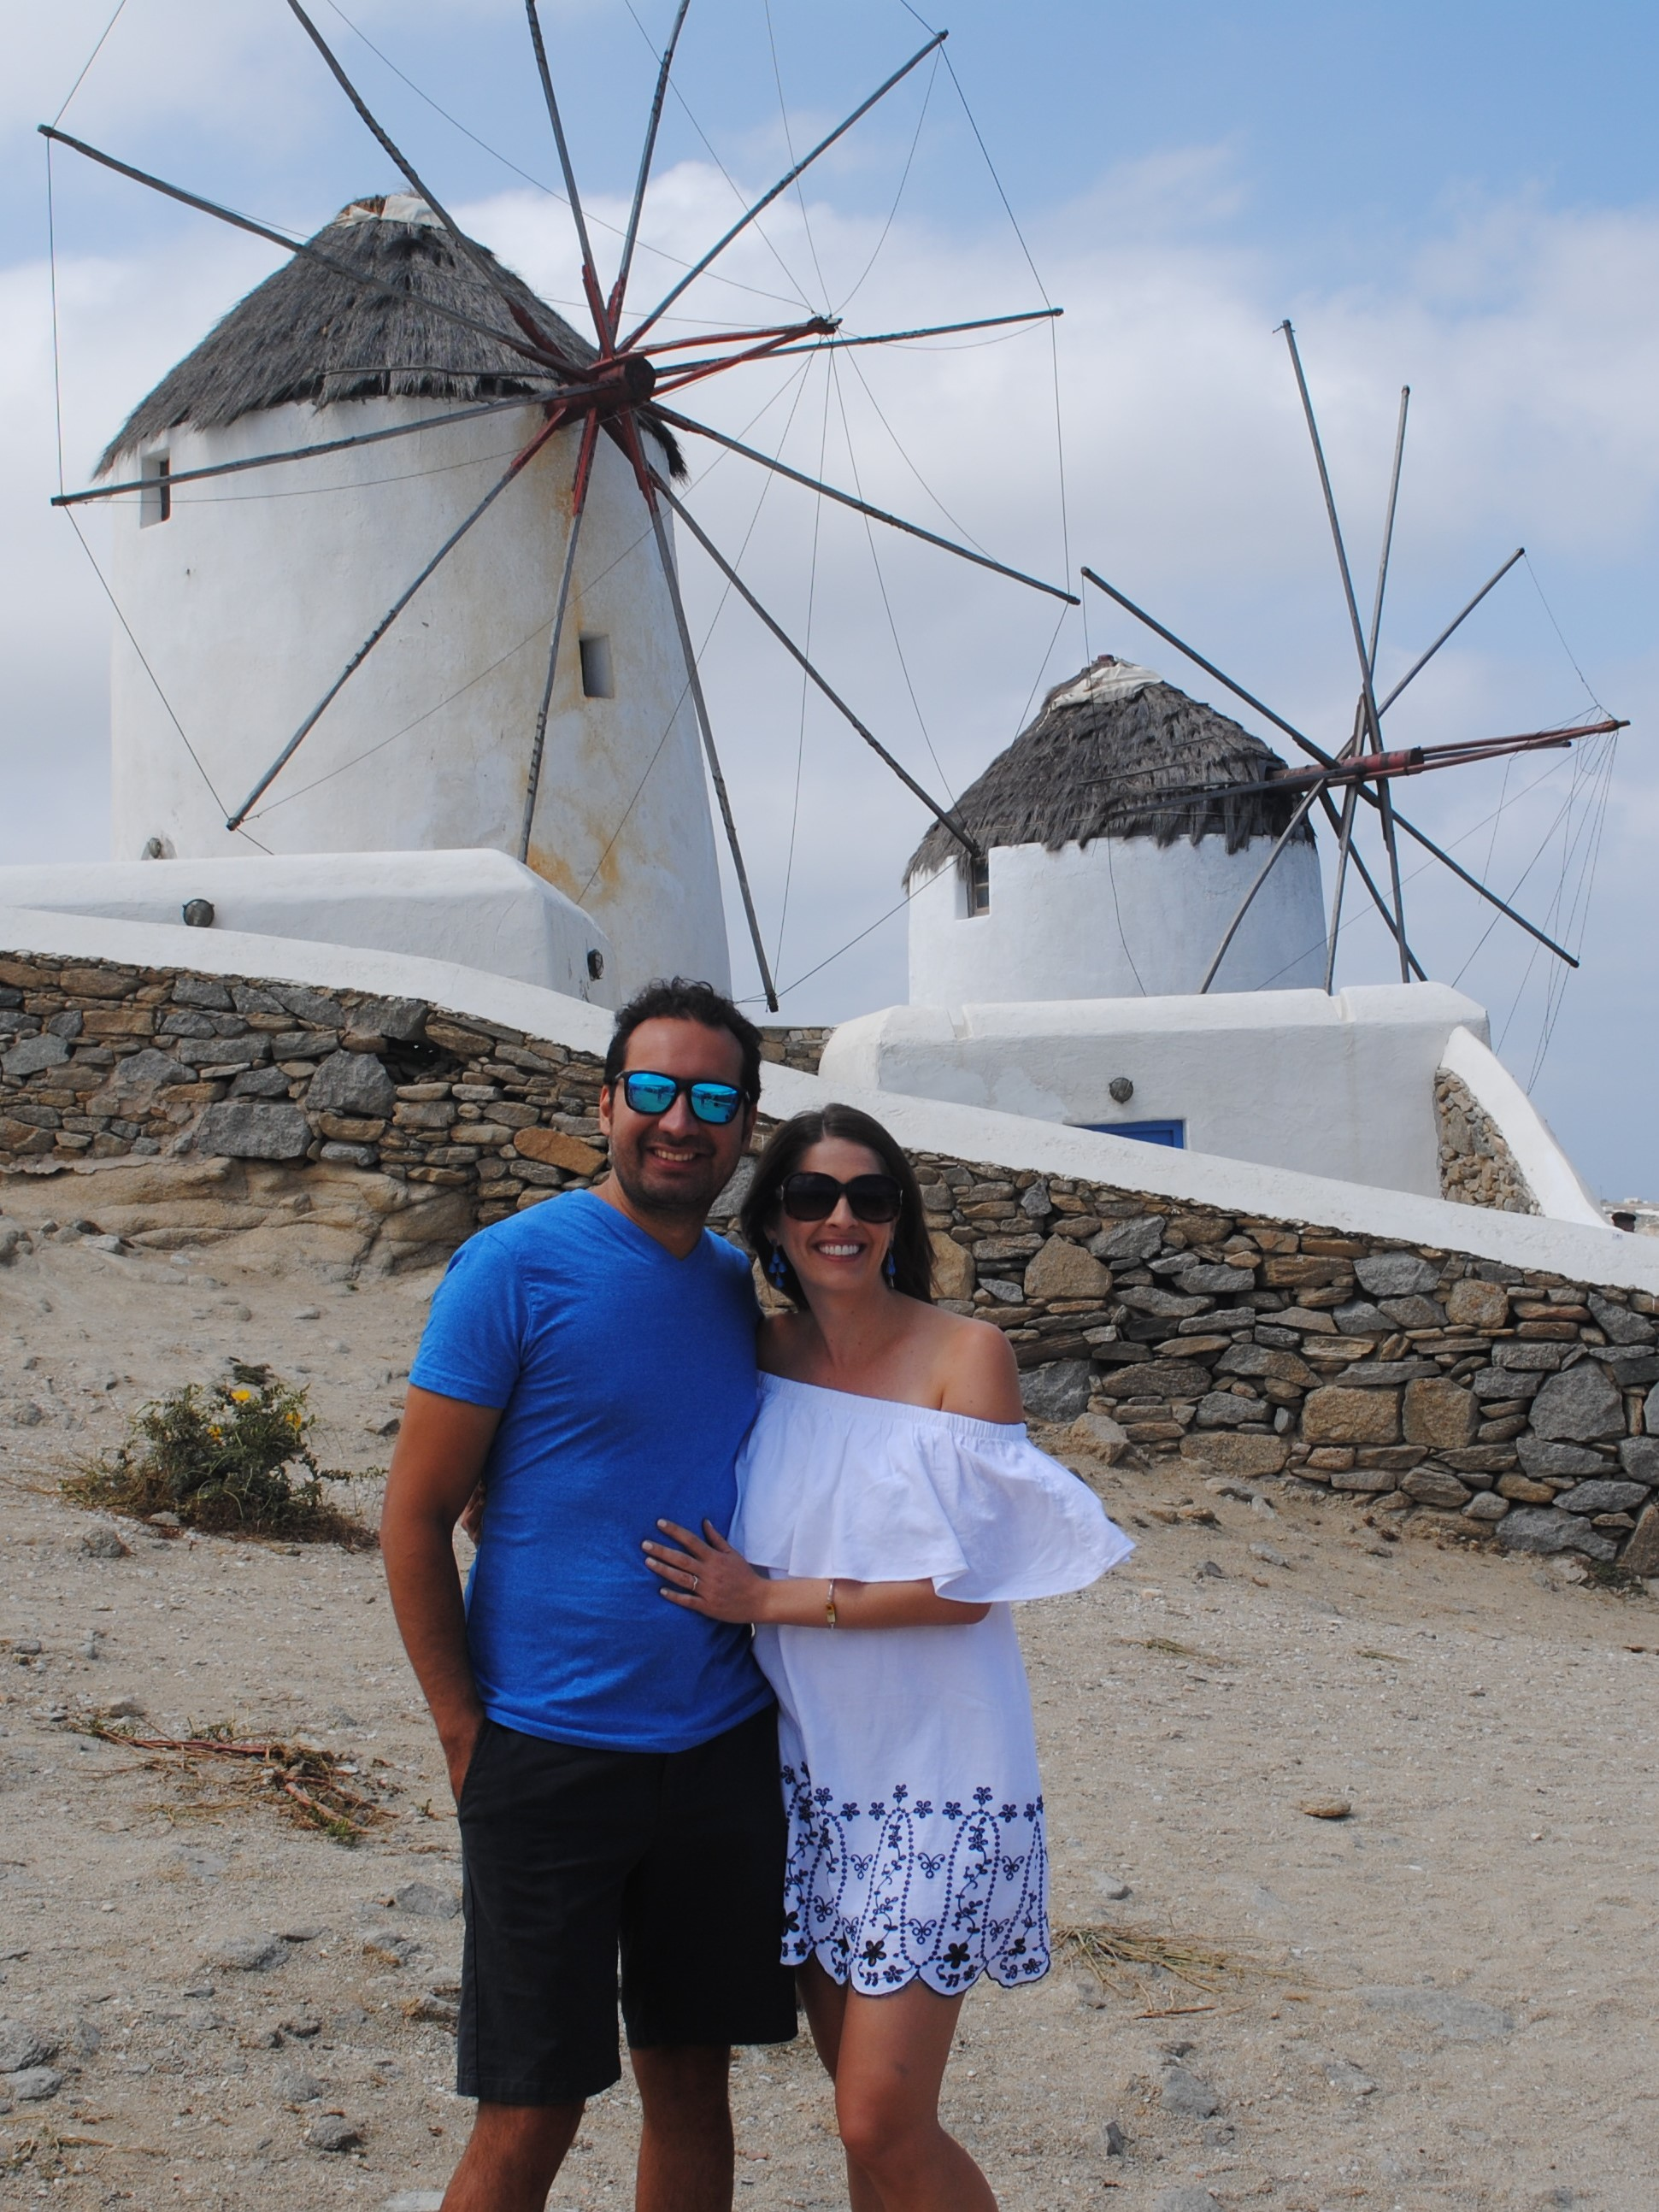 Checking out the windmills in Mykonos